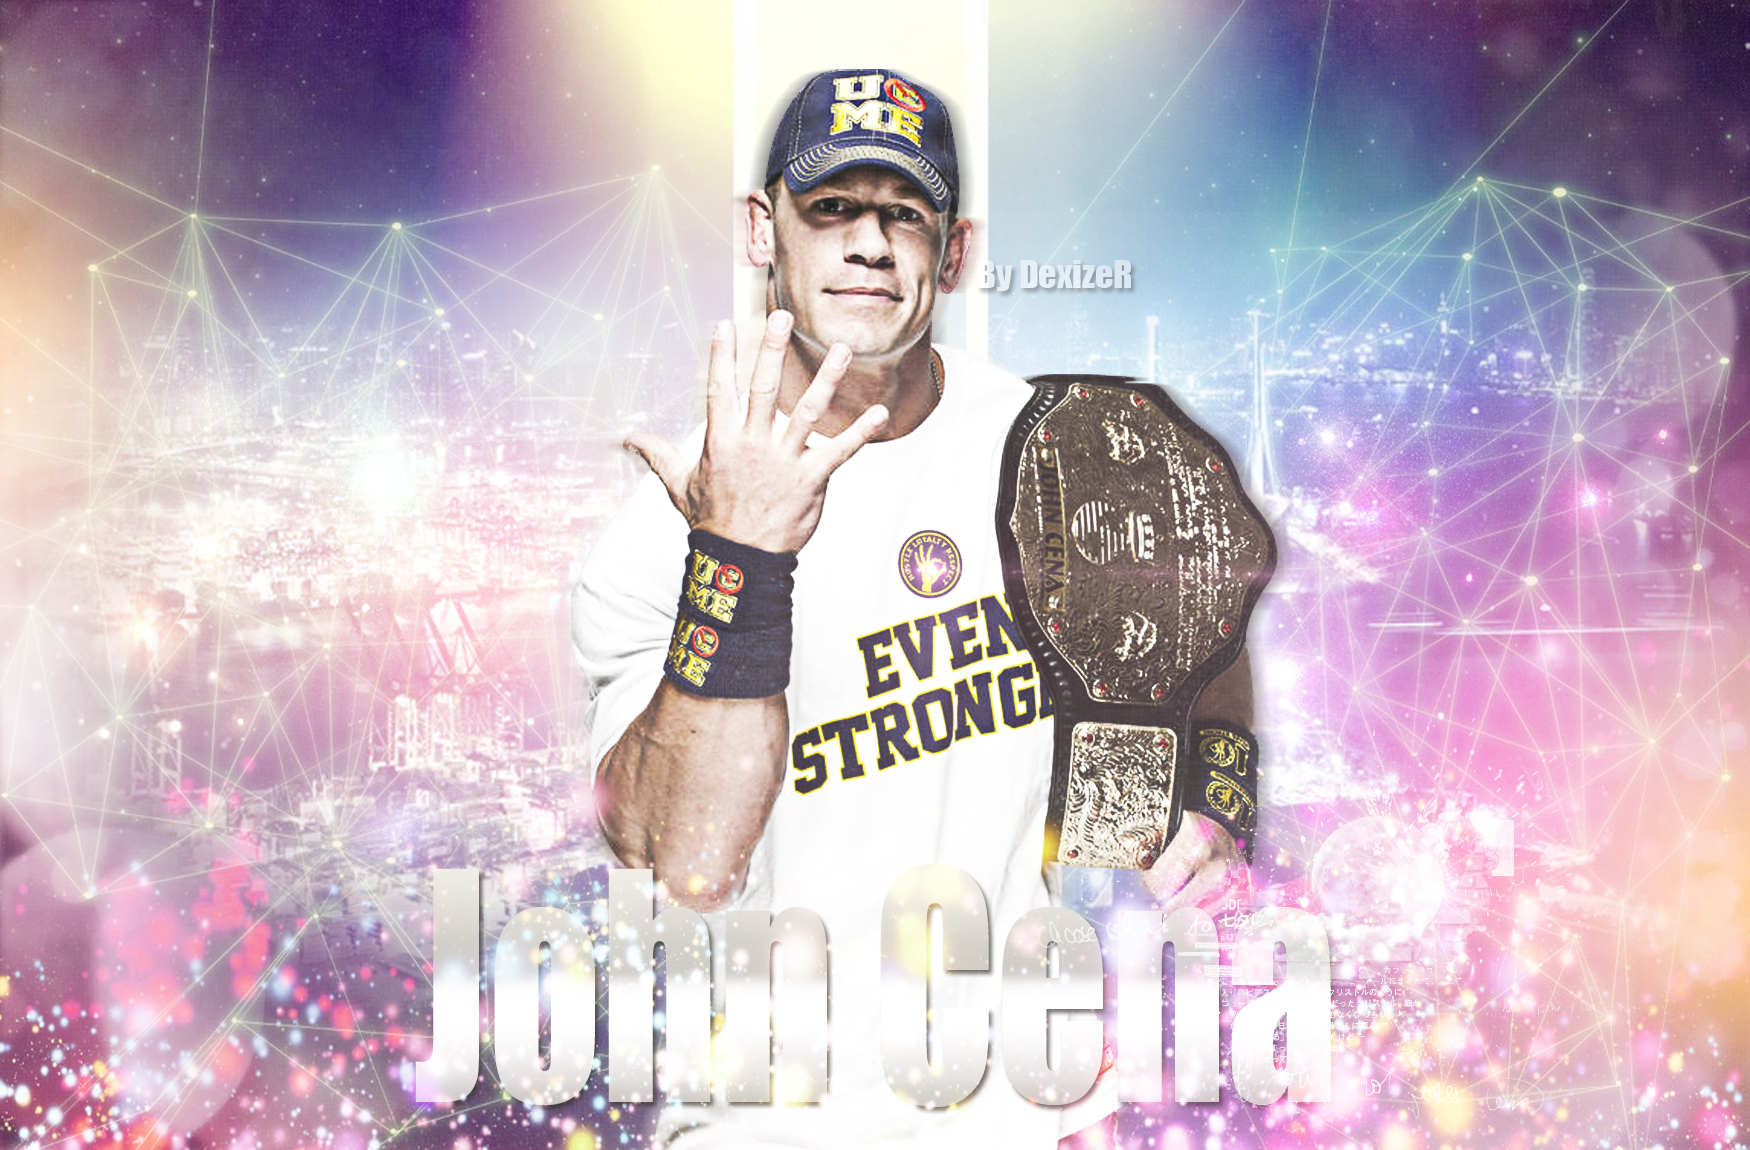 New WWE John Cena Champ 2014 HD Wallpaper by SmileDexizeR on 1750x1150